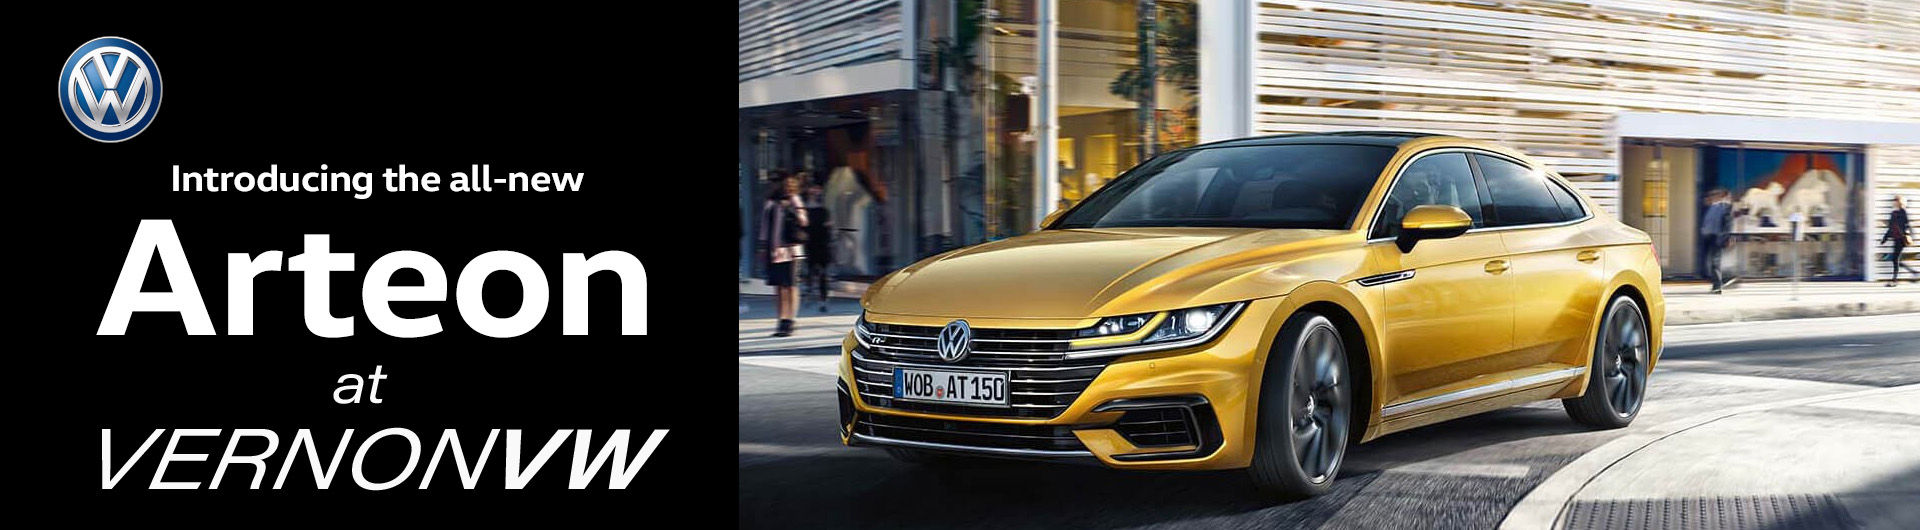 Introducing the all new 2019 Arteon